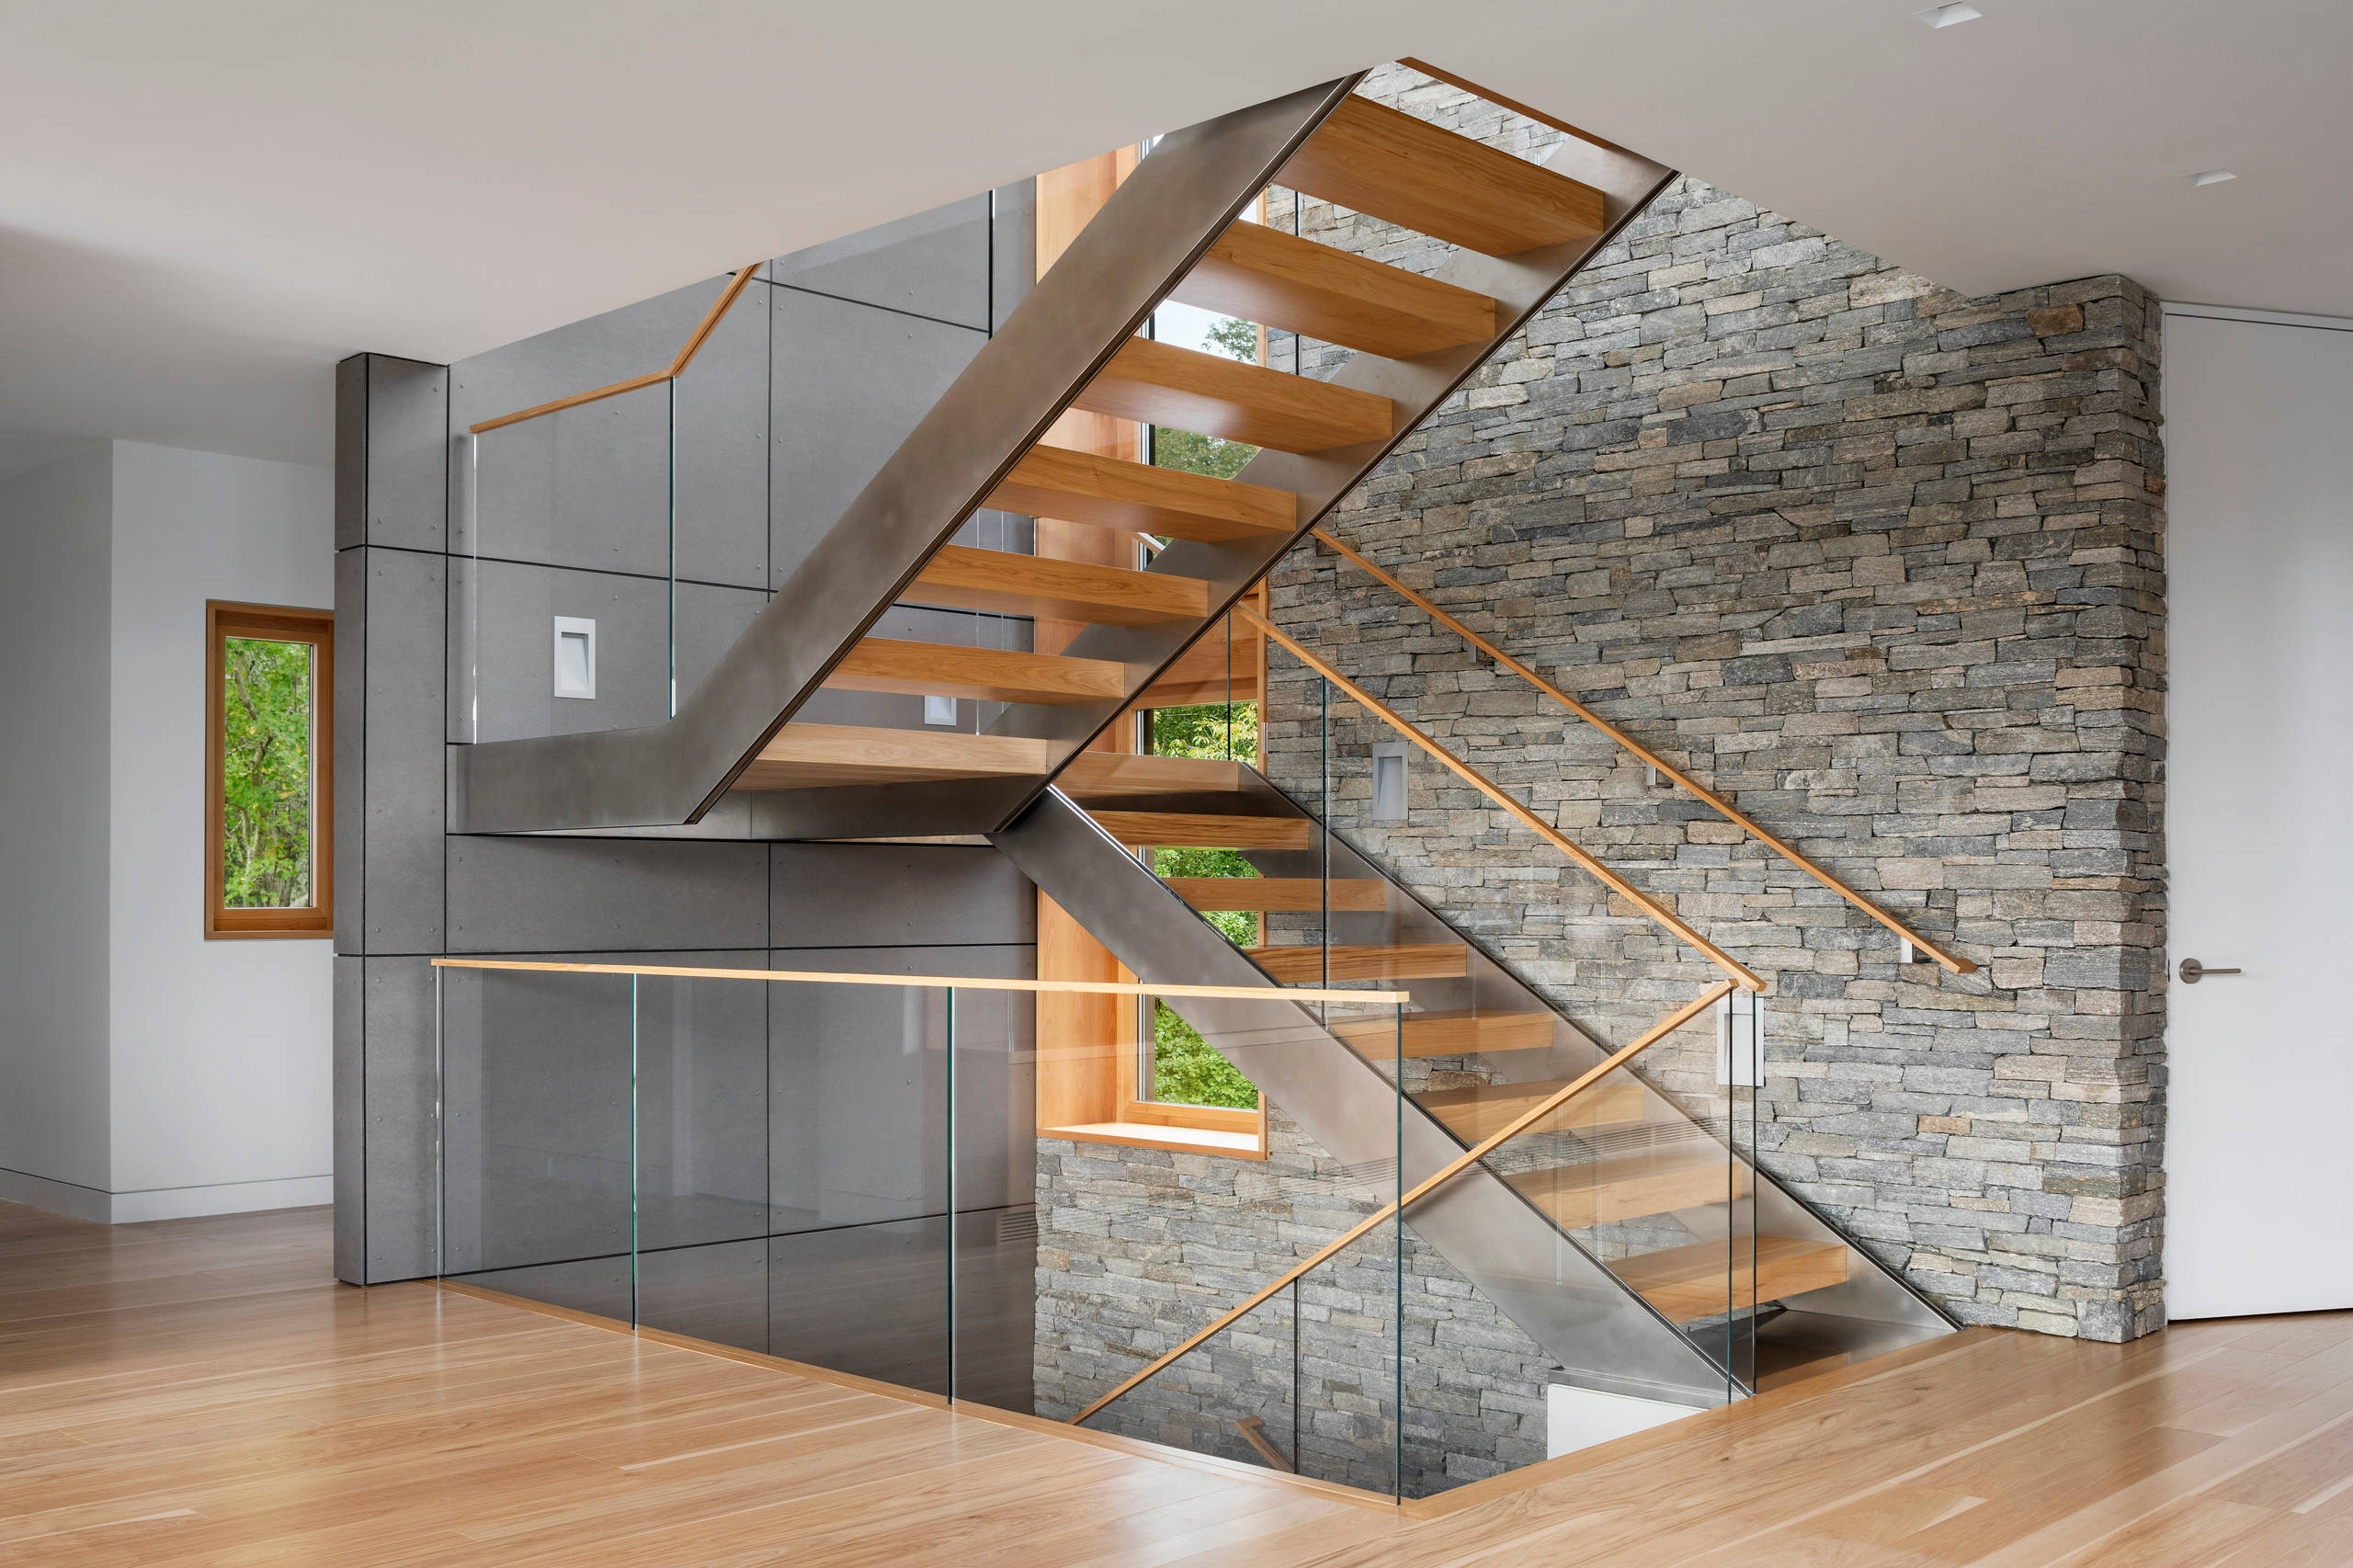 75 Beautiful Modern Staircase Pictures Ideas September 2020 | Modern Staircase Design Outside Home | Msmedia | Stair Case | Spiral Staircase | Decorative Wrought | Iron Railings